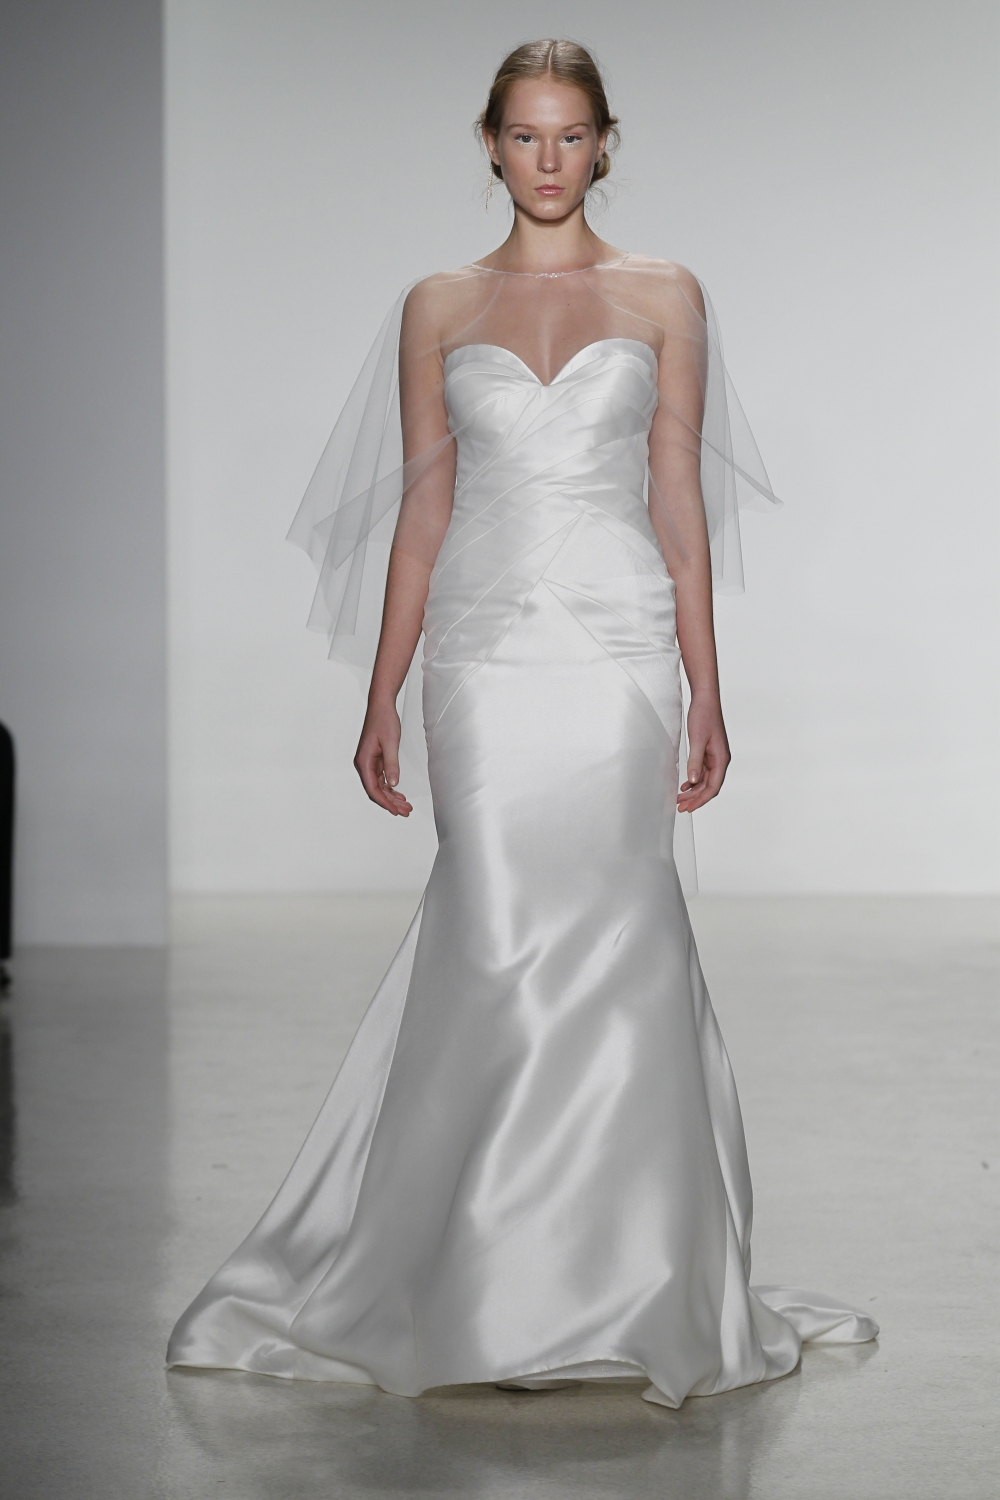 Delaney- Mikado trumpet wedding dress with sculptural bodice seaming and skirt godets